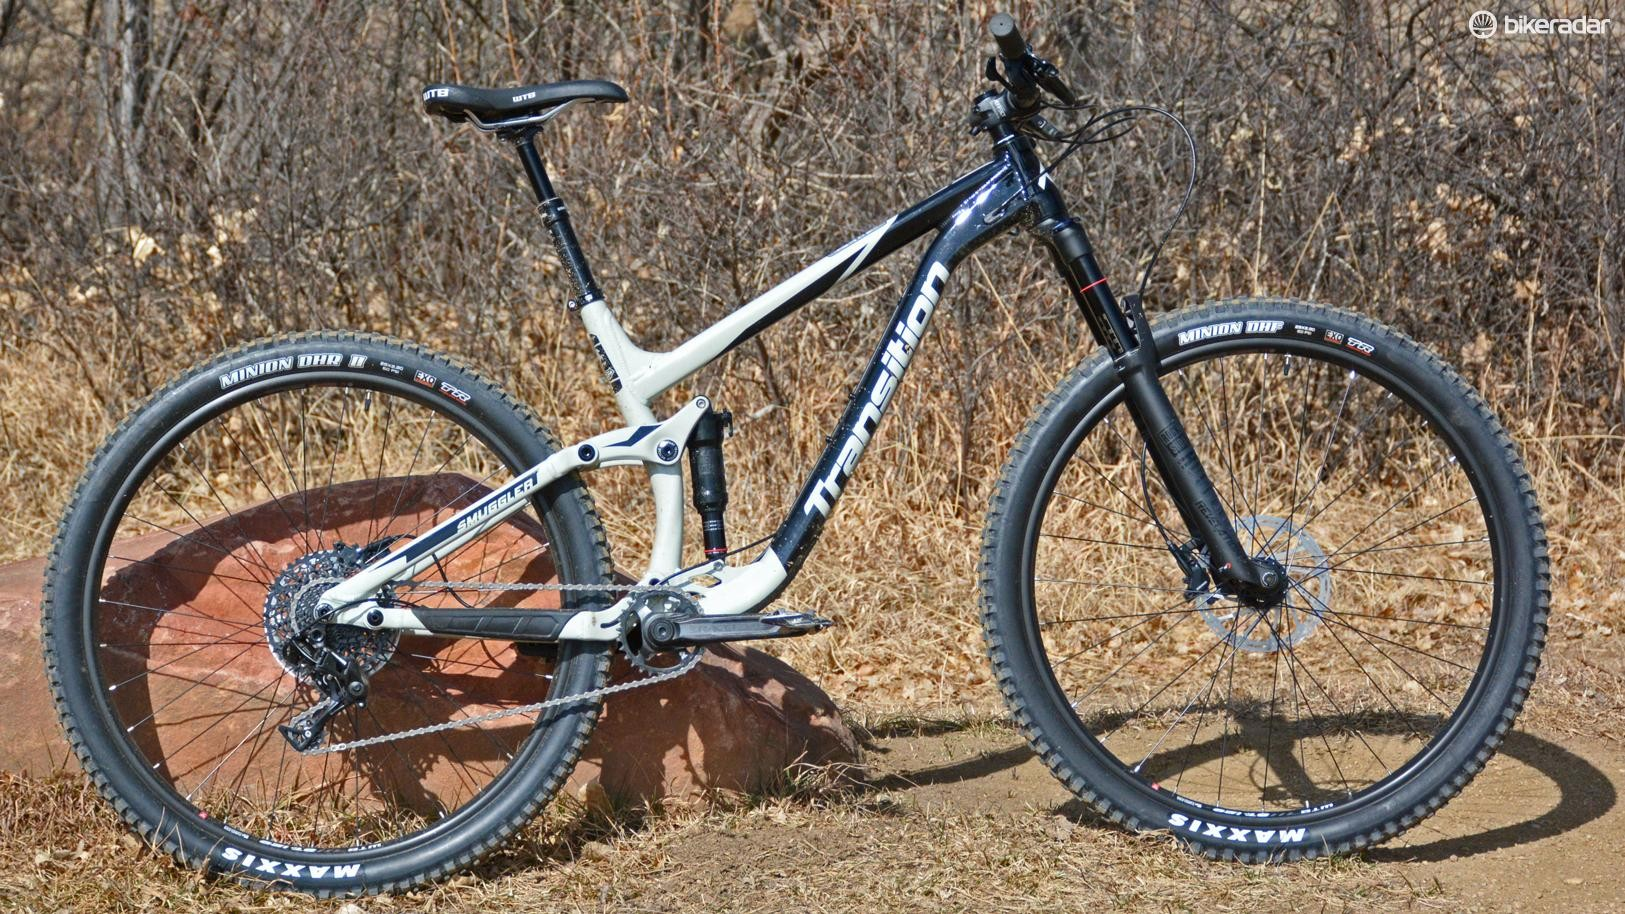 5d19ae2c28f Transition's aluminum Smuggler NX has 29in wheels and 140/120mm of front  and rear travel